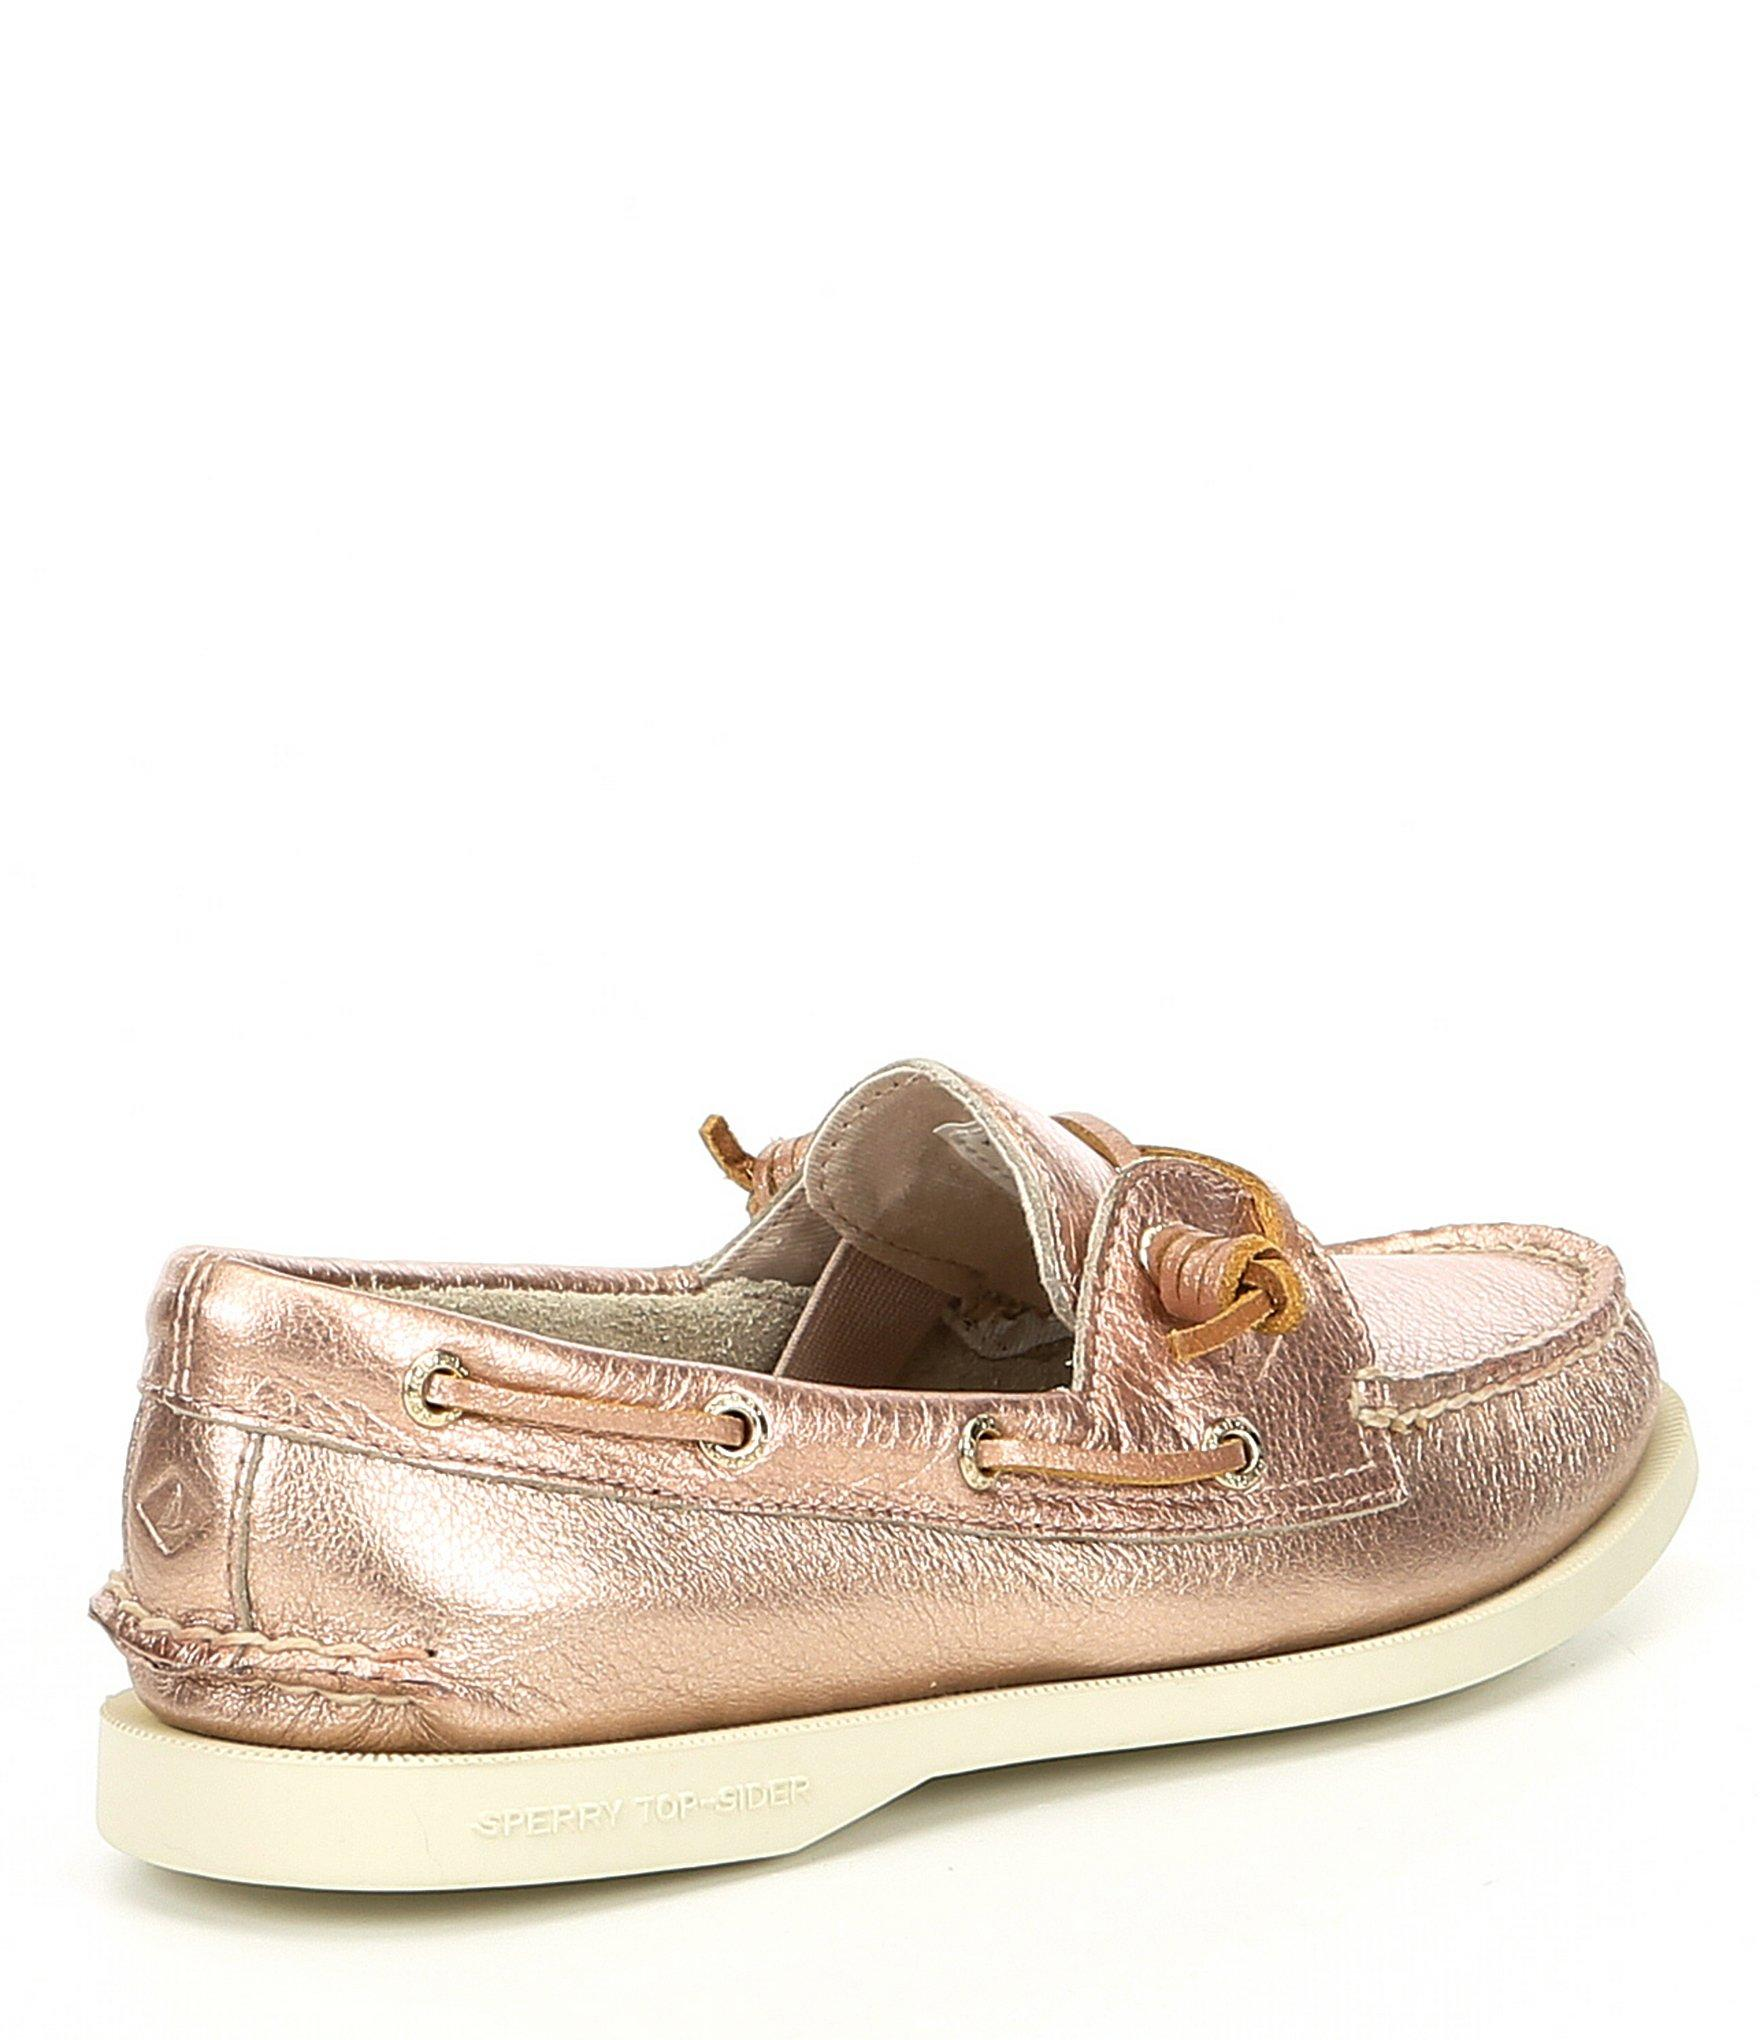 393e6c5e6f32 Sperry Top-Sider - Authentic Original Vida Metallic Leather Boat Shoes -  Lyst. View fullscreen